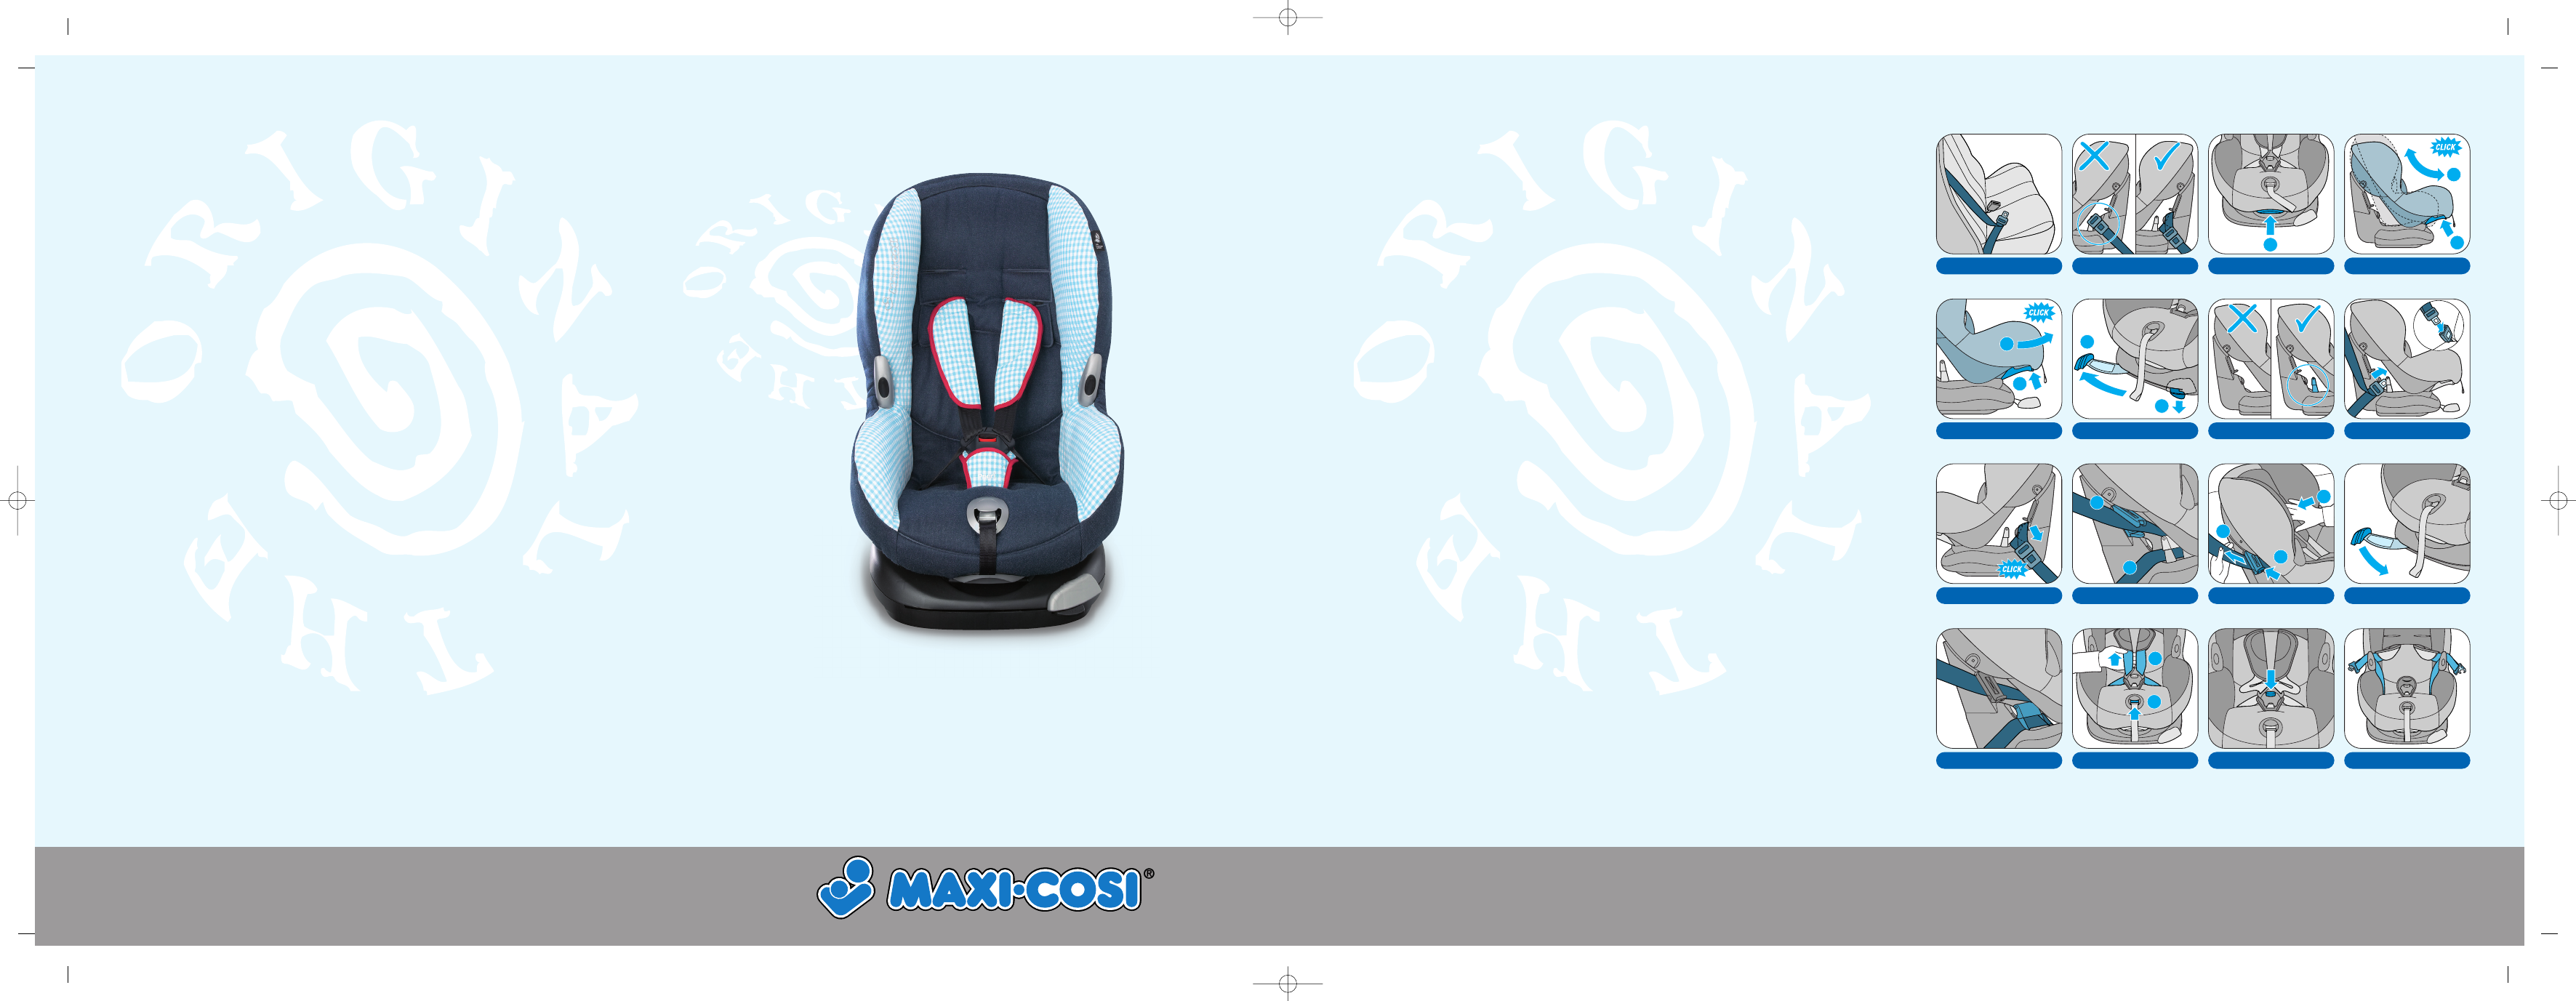 Maxi-Cosi Priori bet at home mobile Wett bet at home risultati serie bet at home Punktzahl SPS Child Car Seat - Compare Prices at Foundem